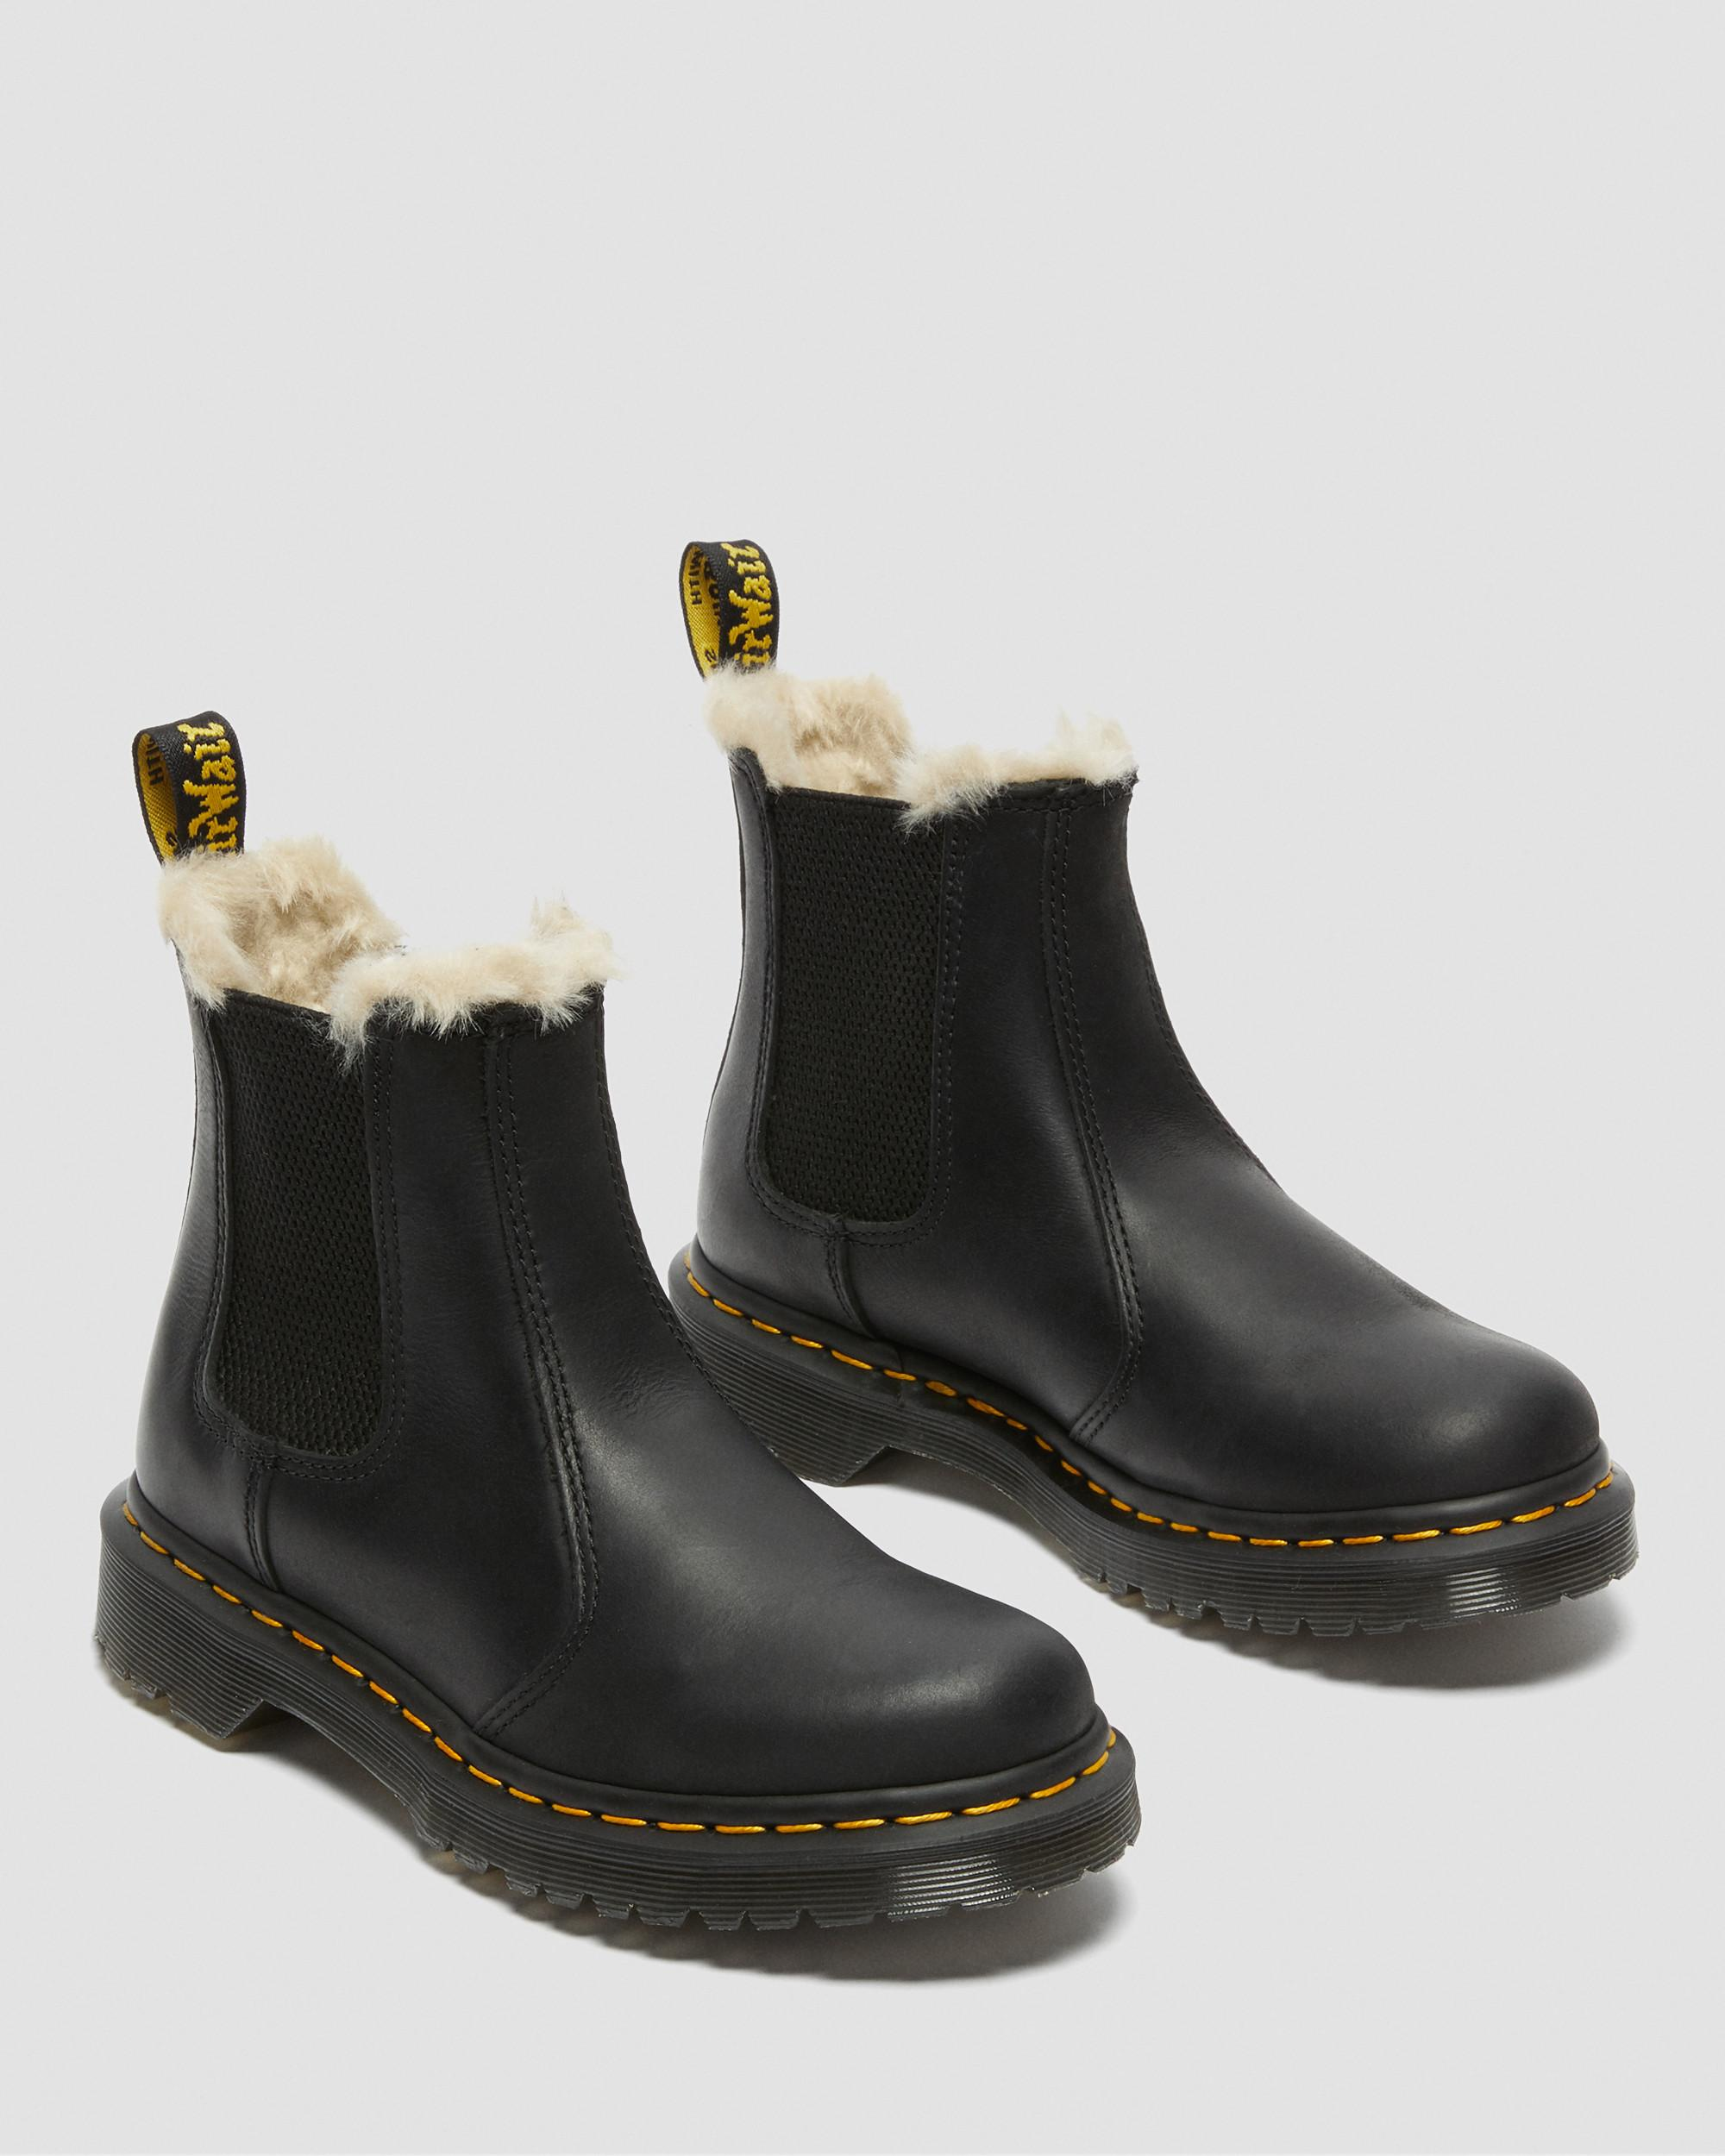 2976 Leonore Fur Lined Leather Chelsea Boots | Dr. Martens NL